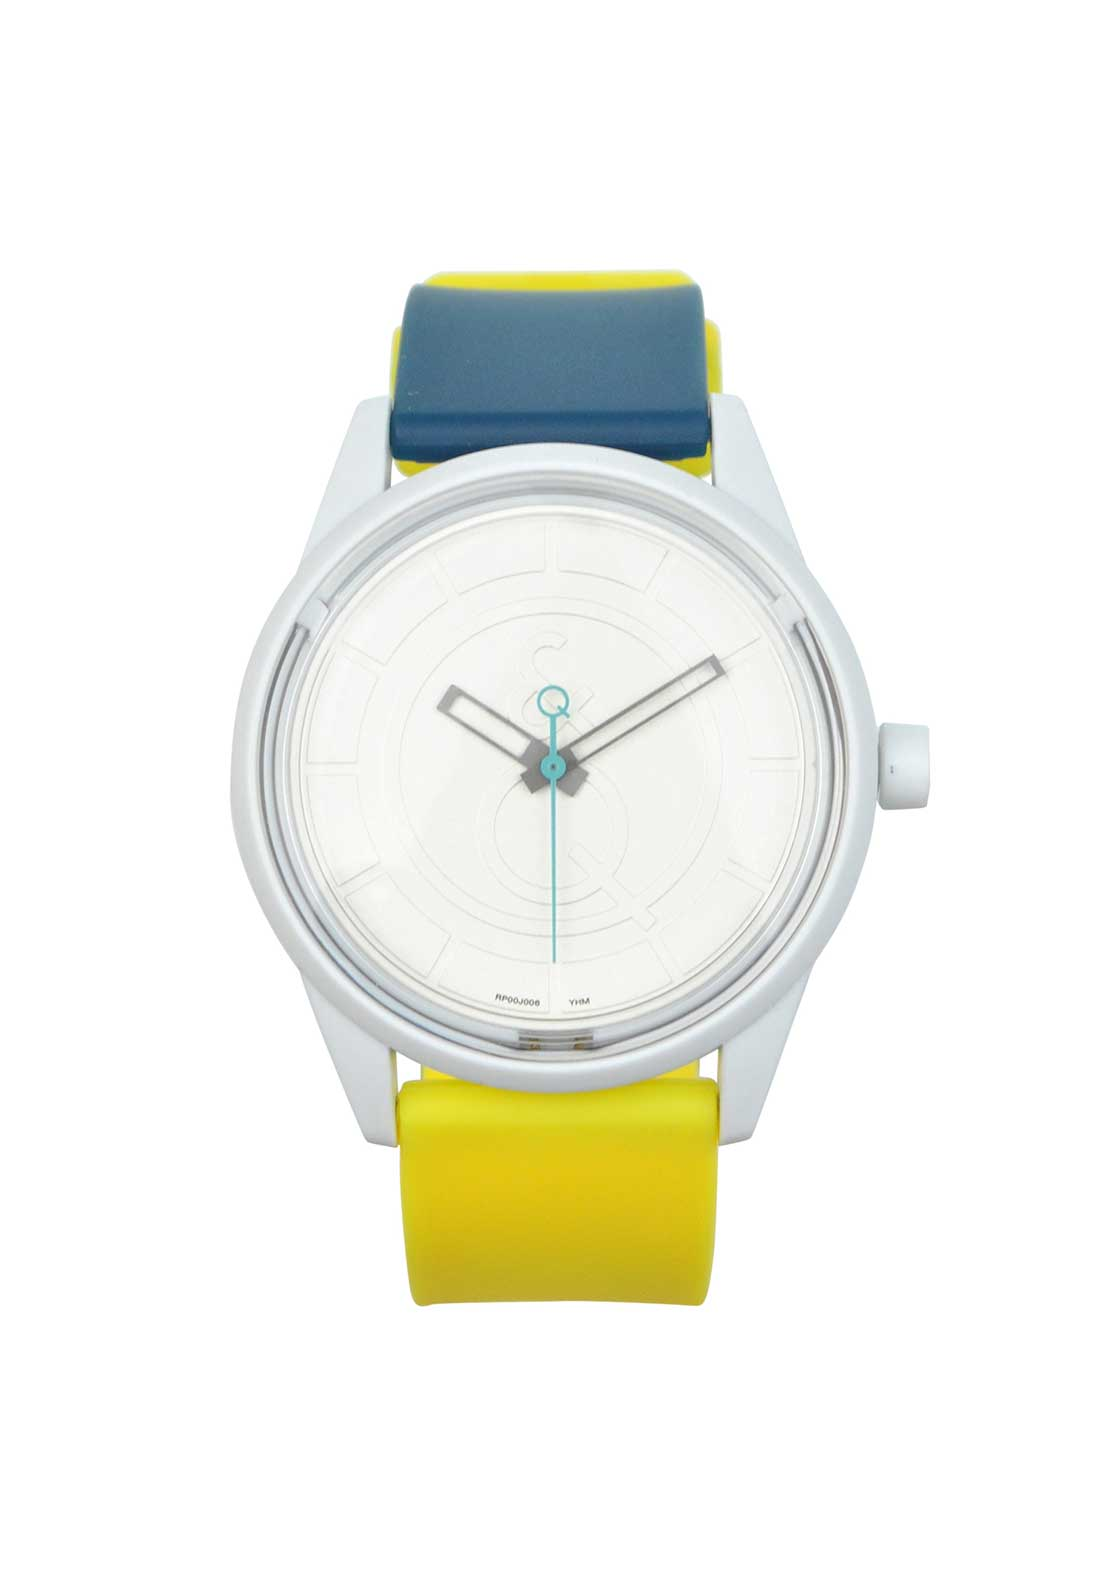 Q & Q Smile Solar Powered Unisex Watch, Green & Yellow